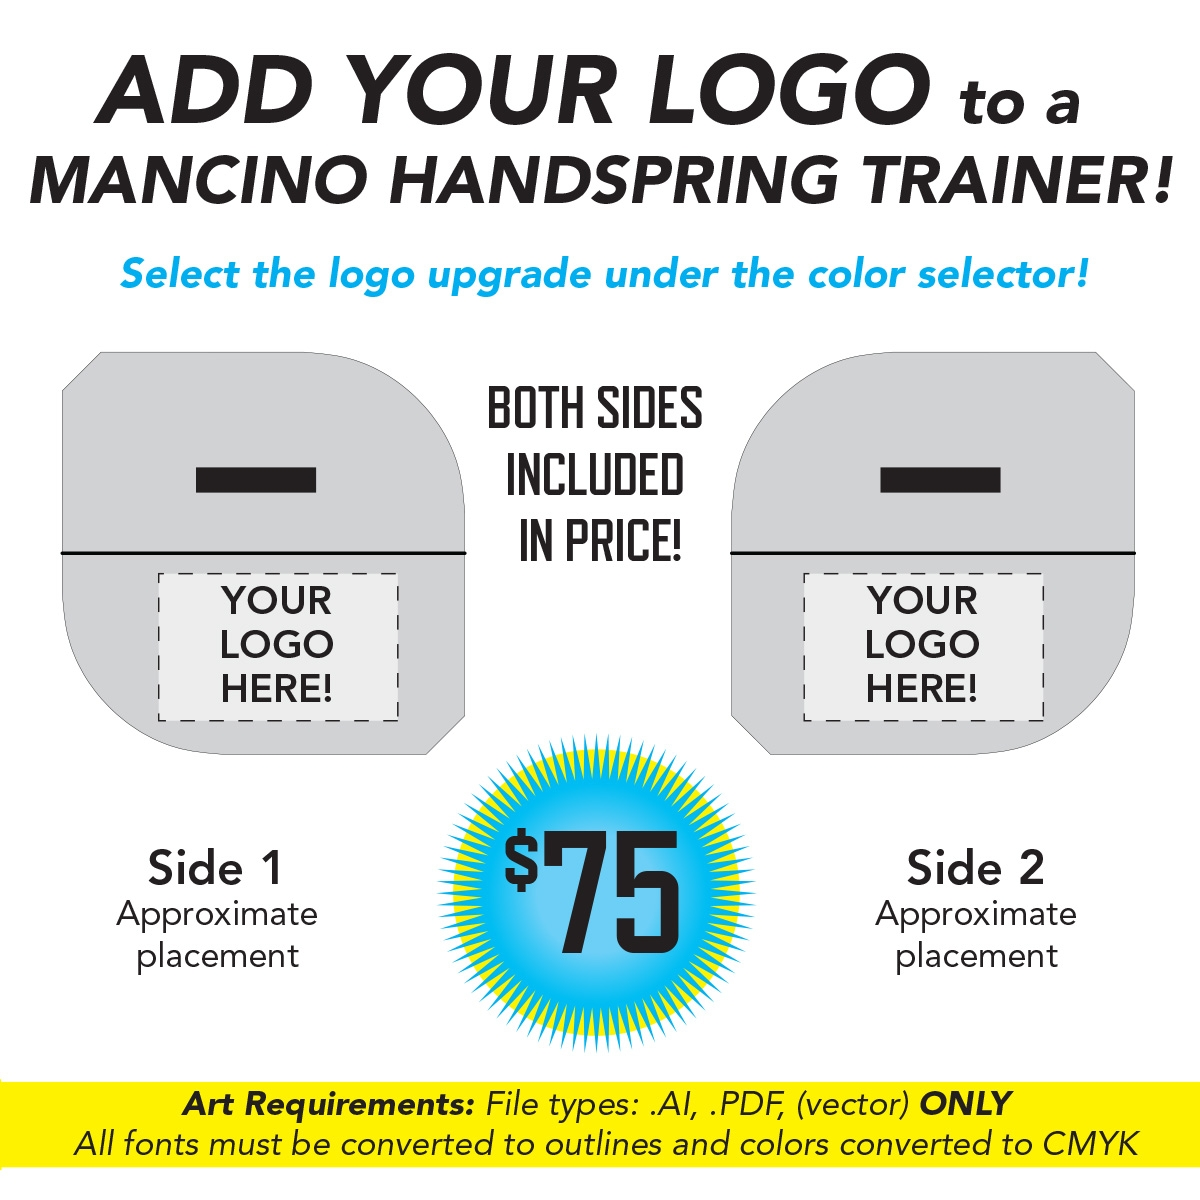 add your gym logo and brand to a mancino tumble trainer - mancino mats - handspring trainers